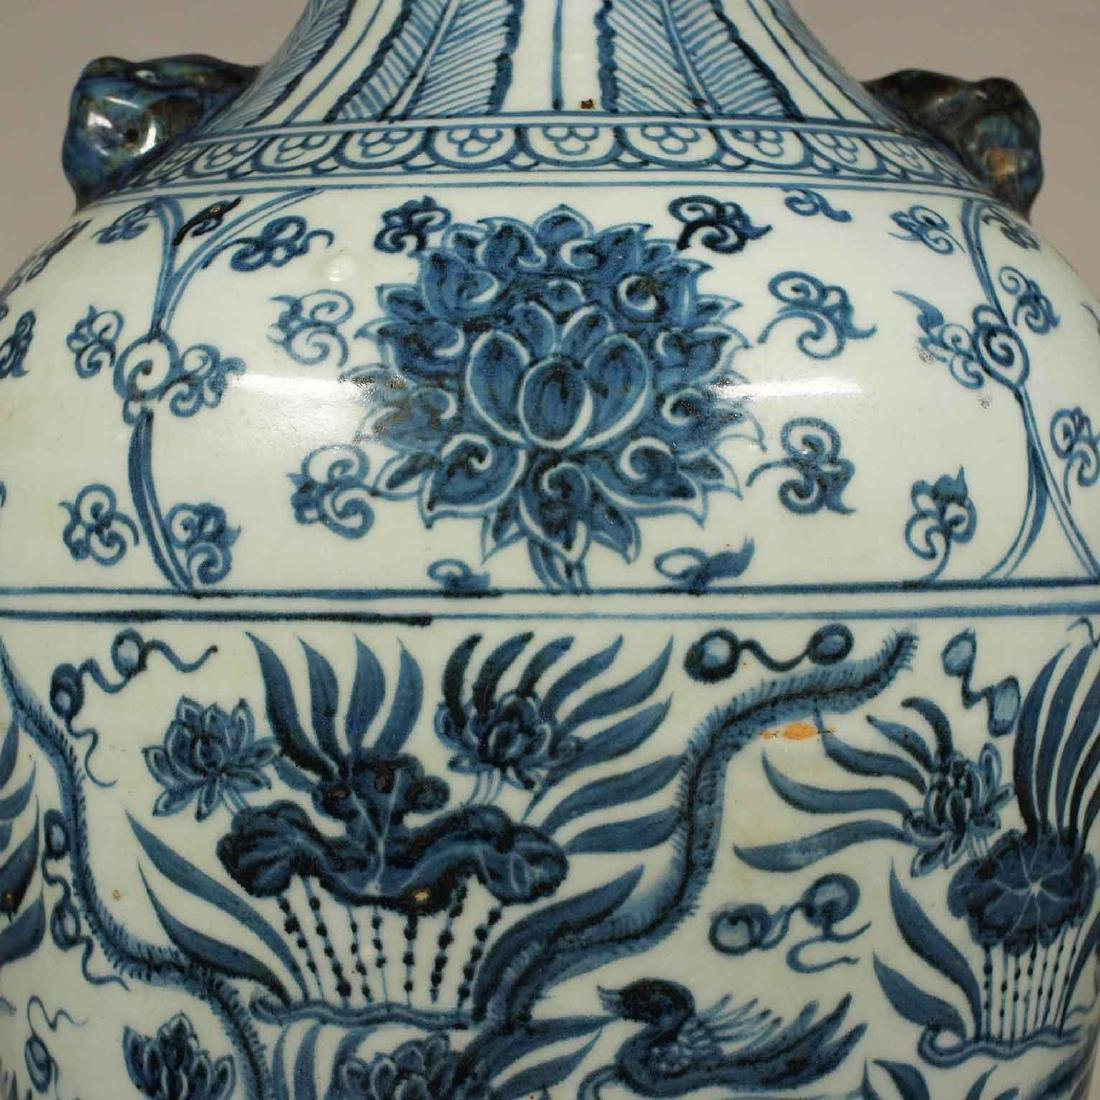 Lion-Head Handled Vase with Mandarin Ducks, early Ming - 7